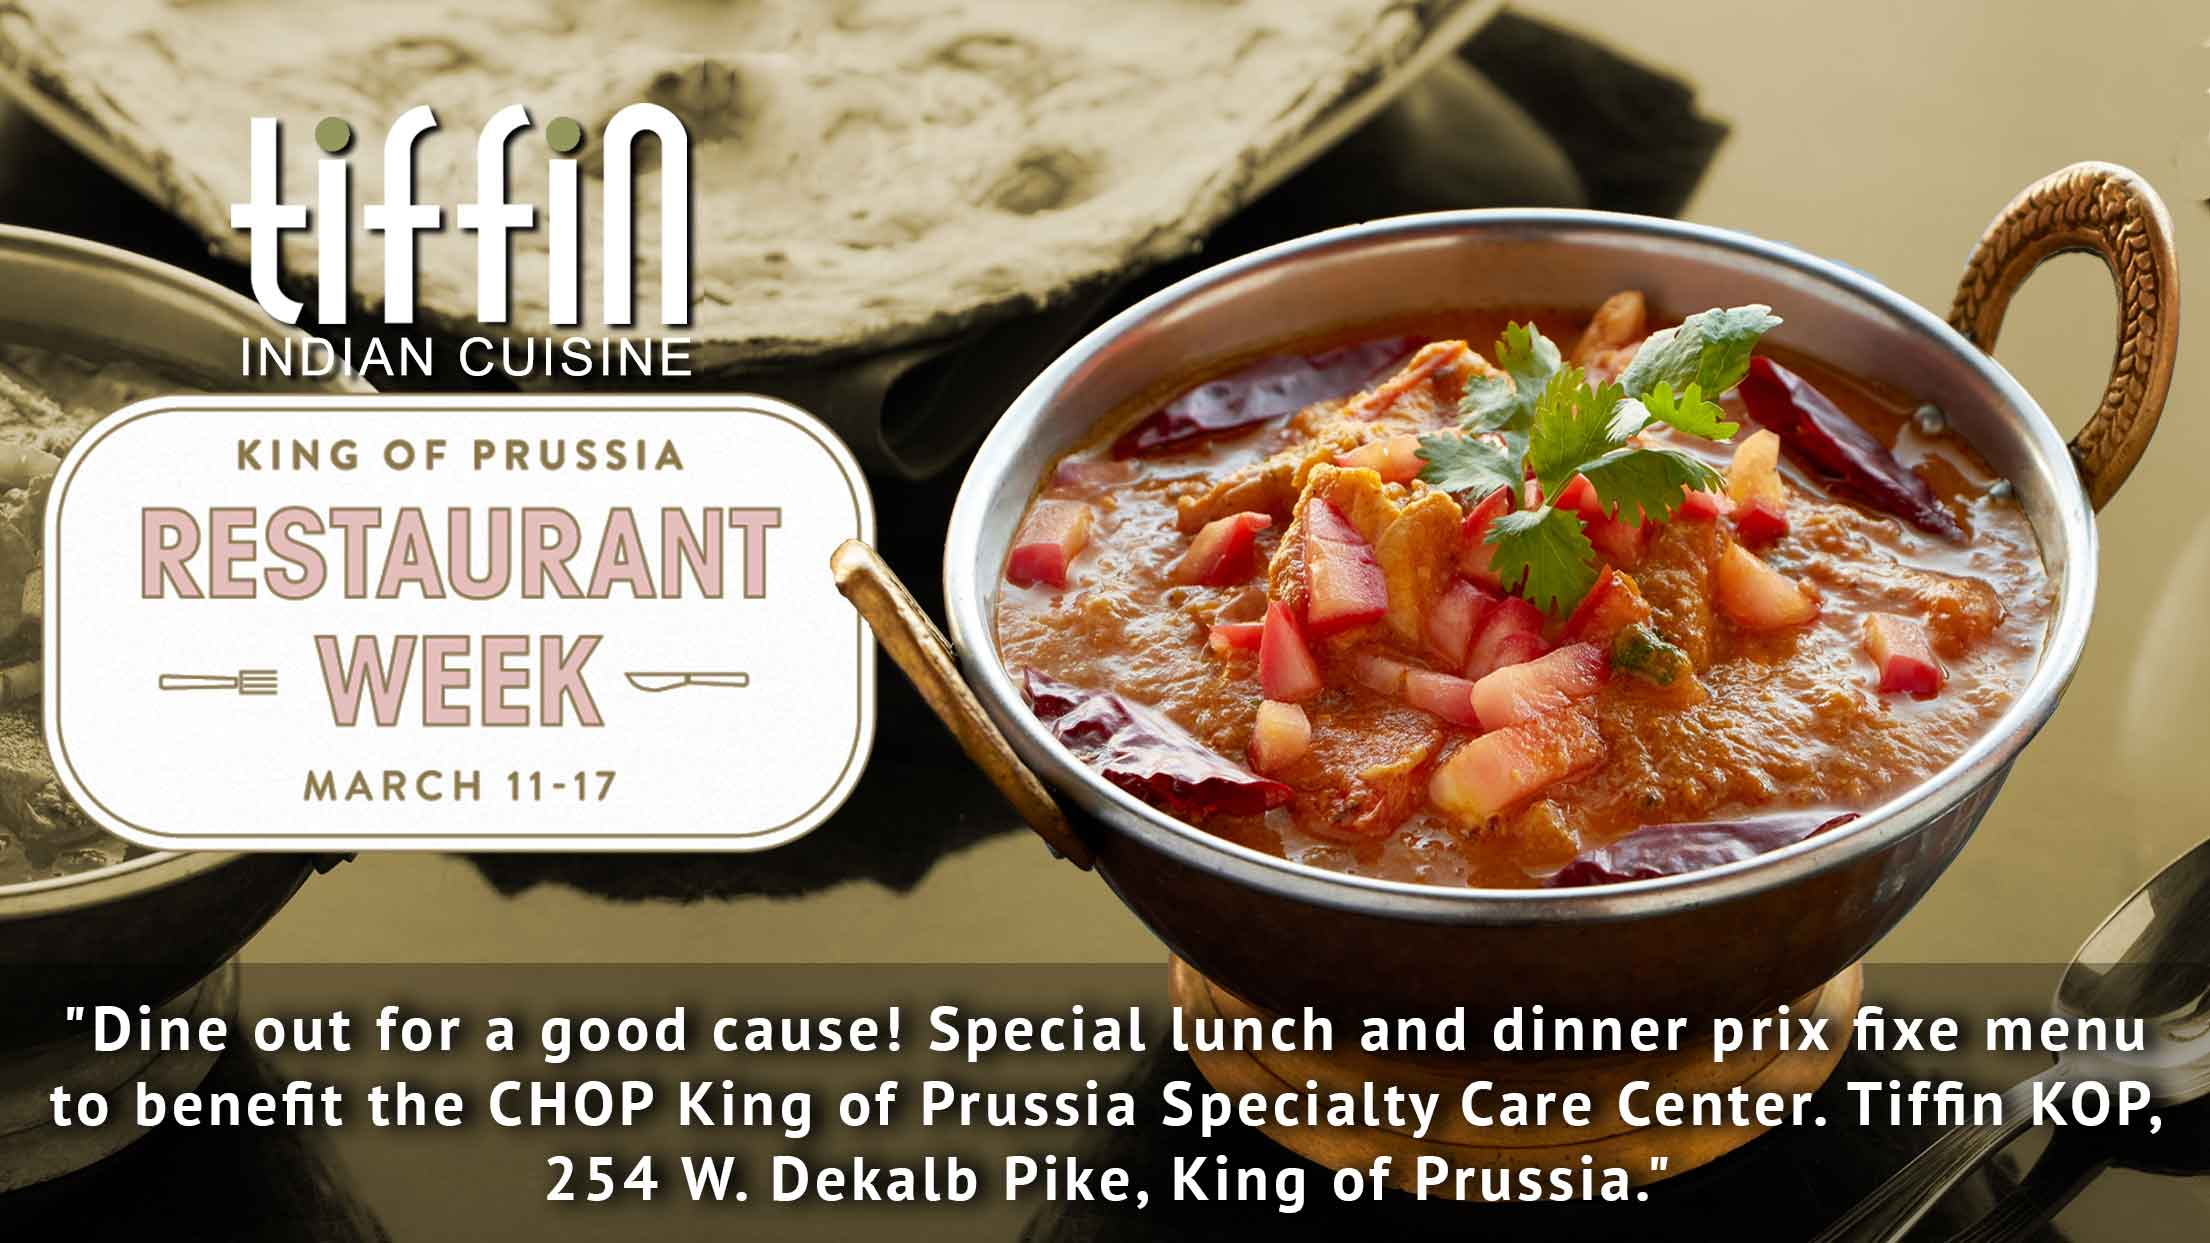 Tiffin Indian Cuisine King of Prussia Restaurant Week Fundraiser for